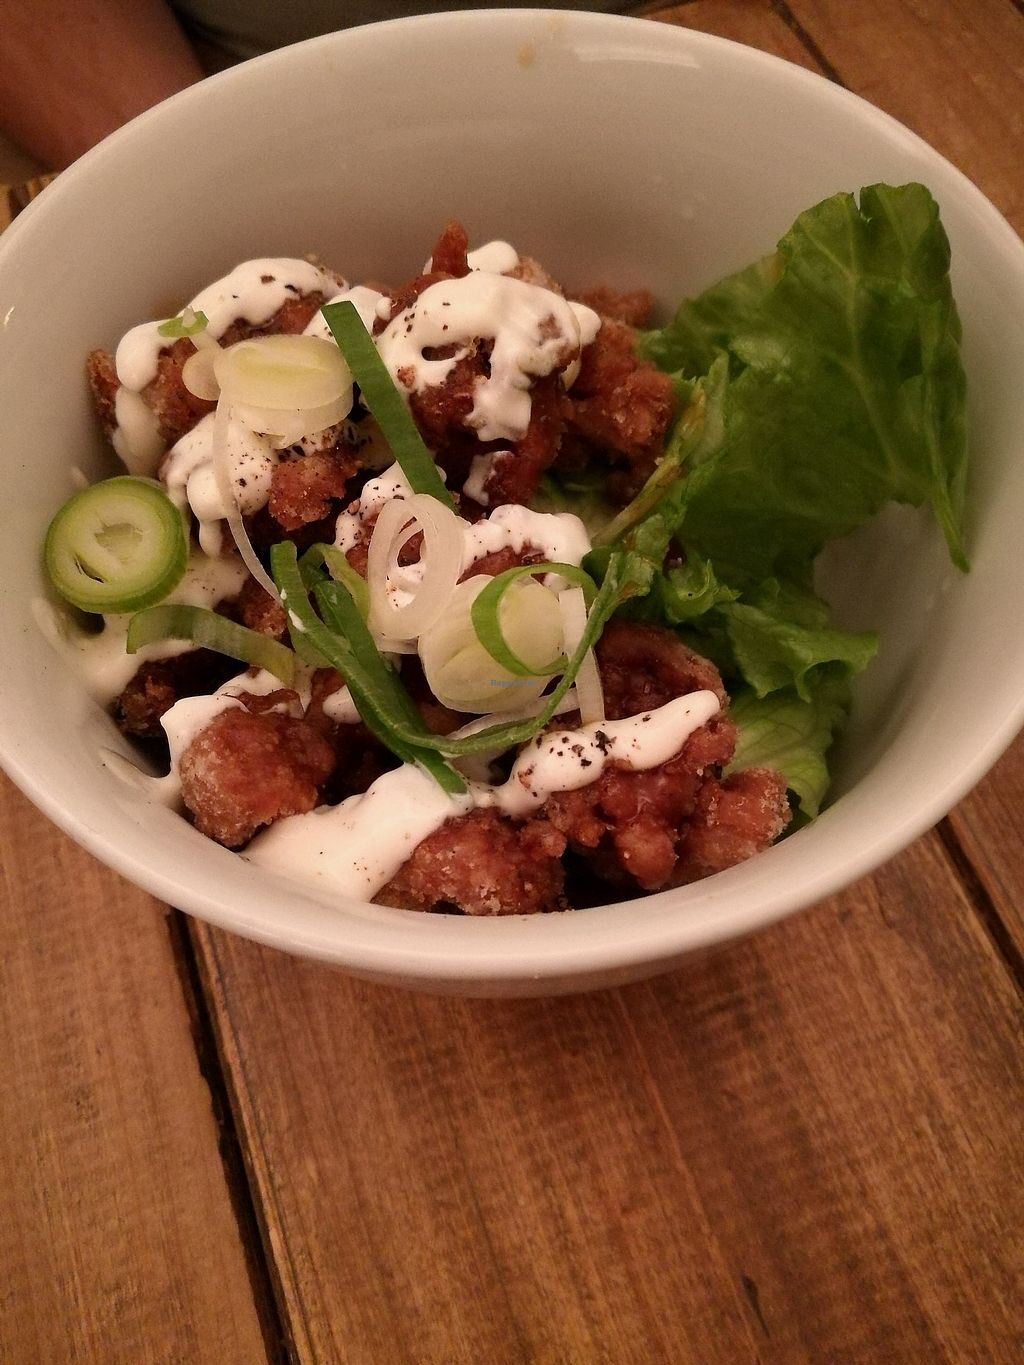 """Photo of Paprika Shokudo Vegan  by <a href=""""/members/profile/Felicious"""">Felicious</a> <br/>Karage soy meat  <br/> April 10, 2018  - <a href='/contact/abuse/image/45738/383275'>Report</a>"""